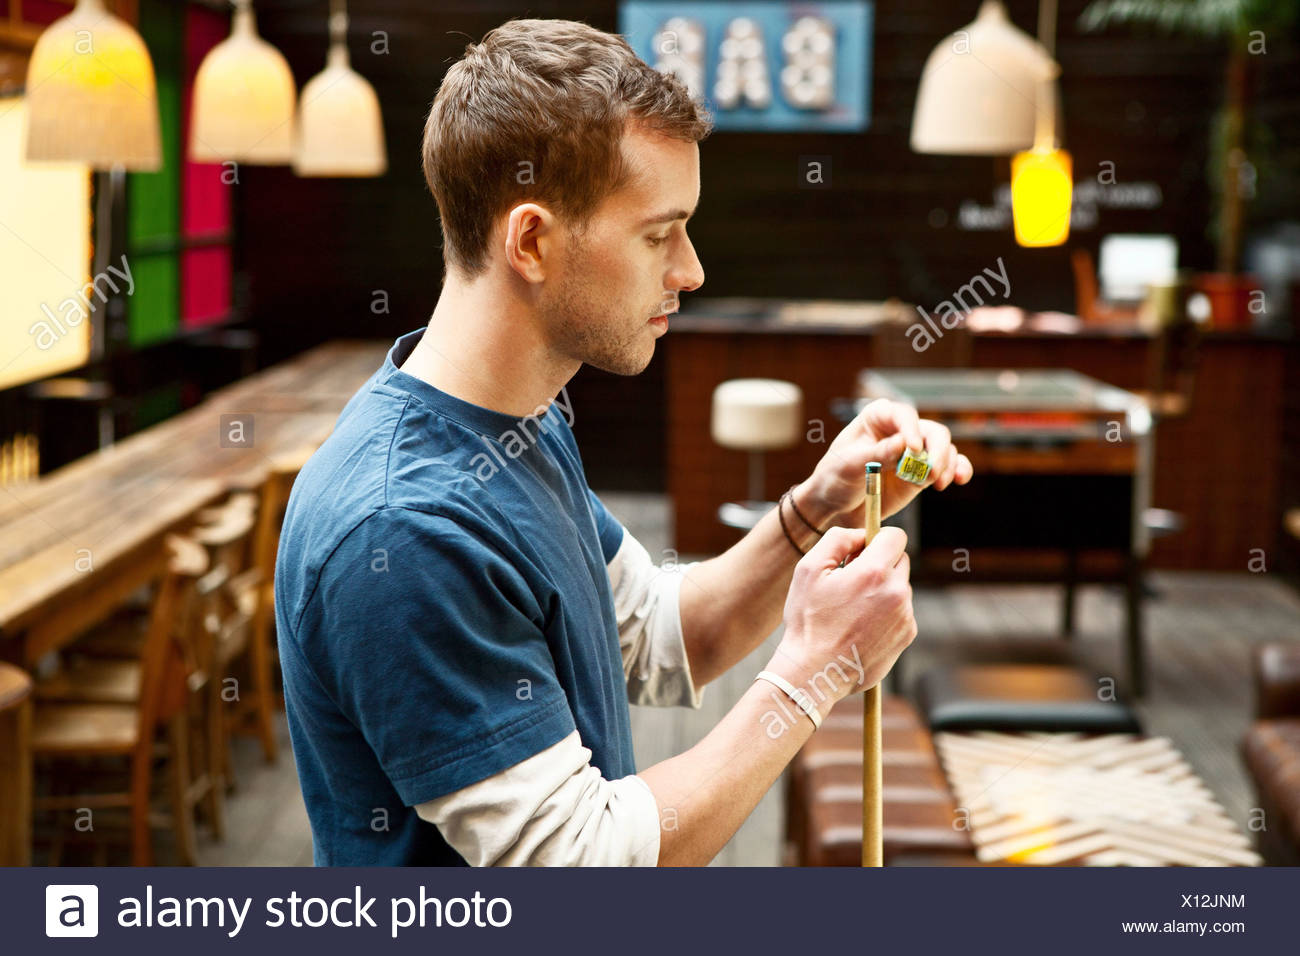 Man playing pool in bar - Stock Image